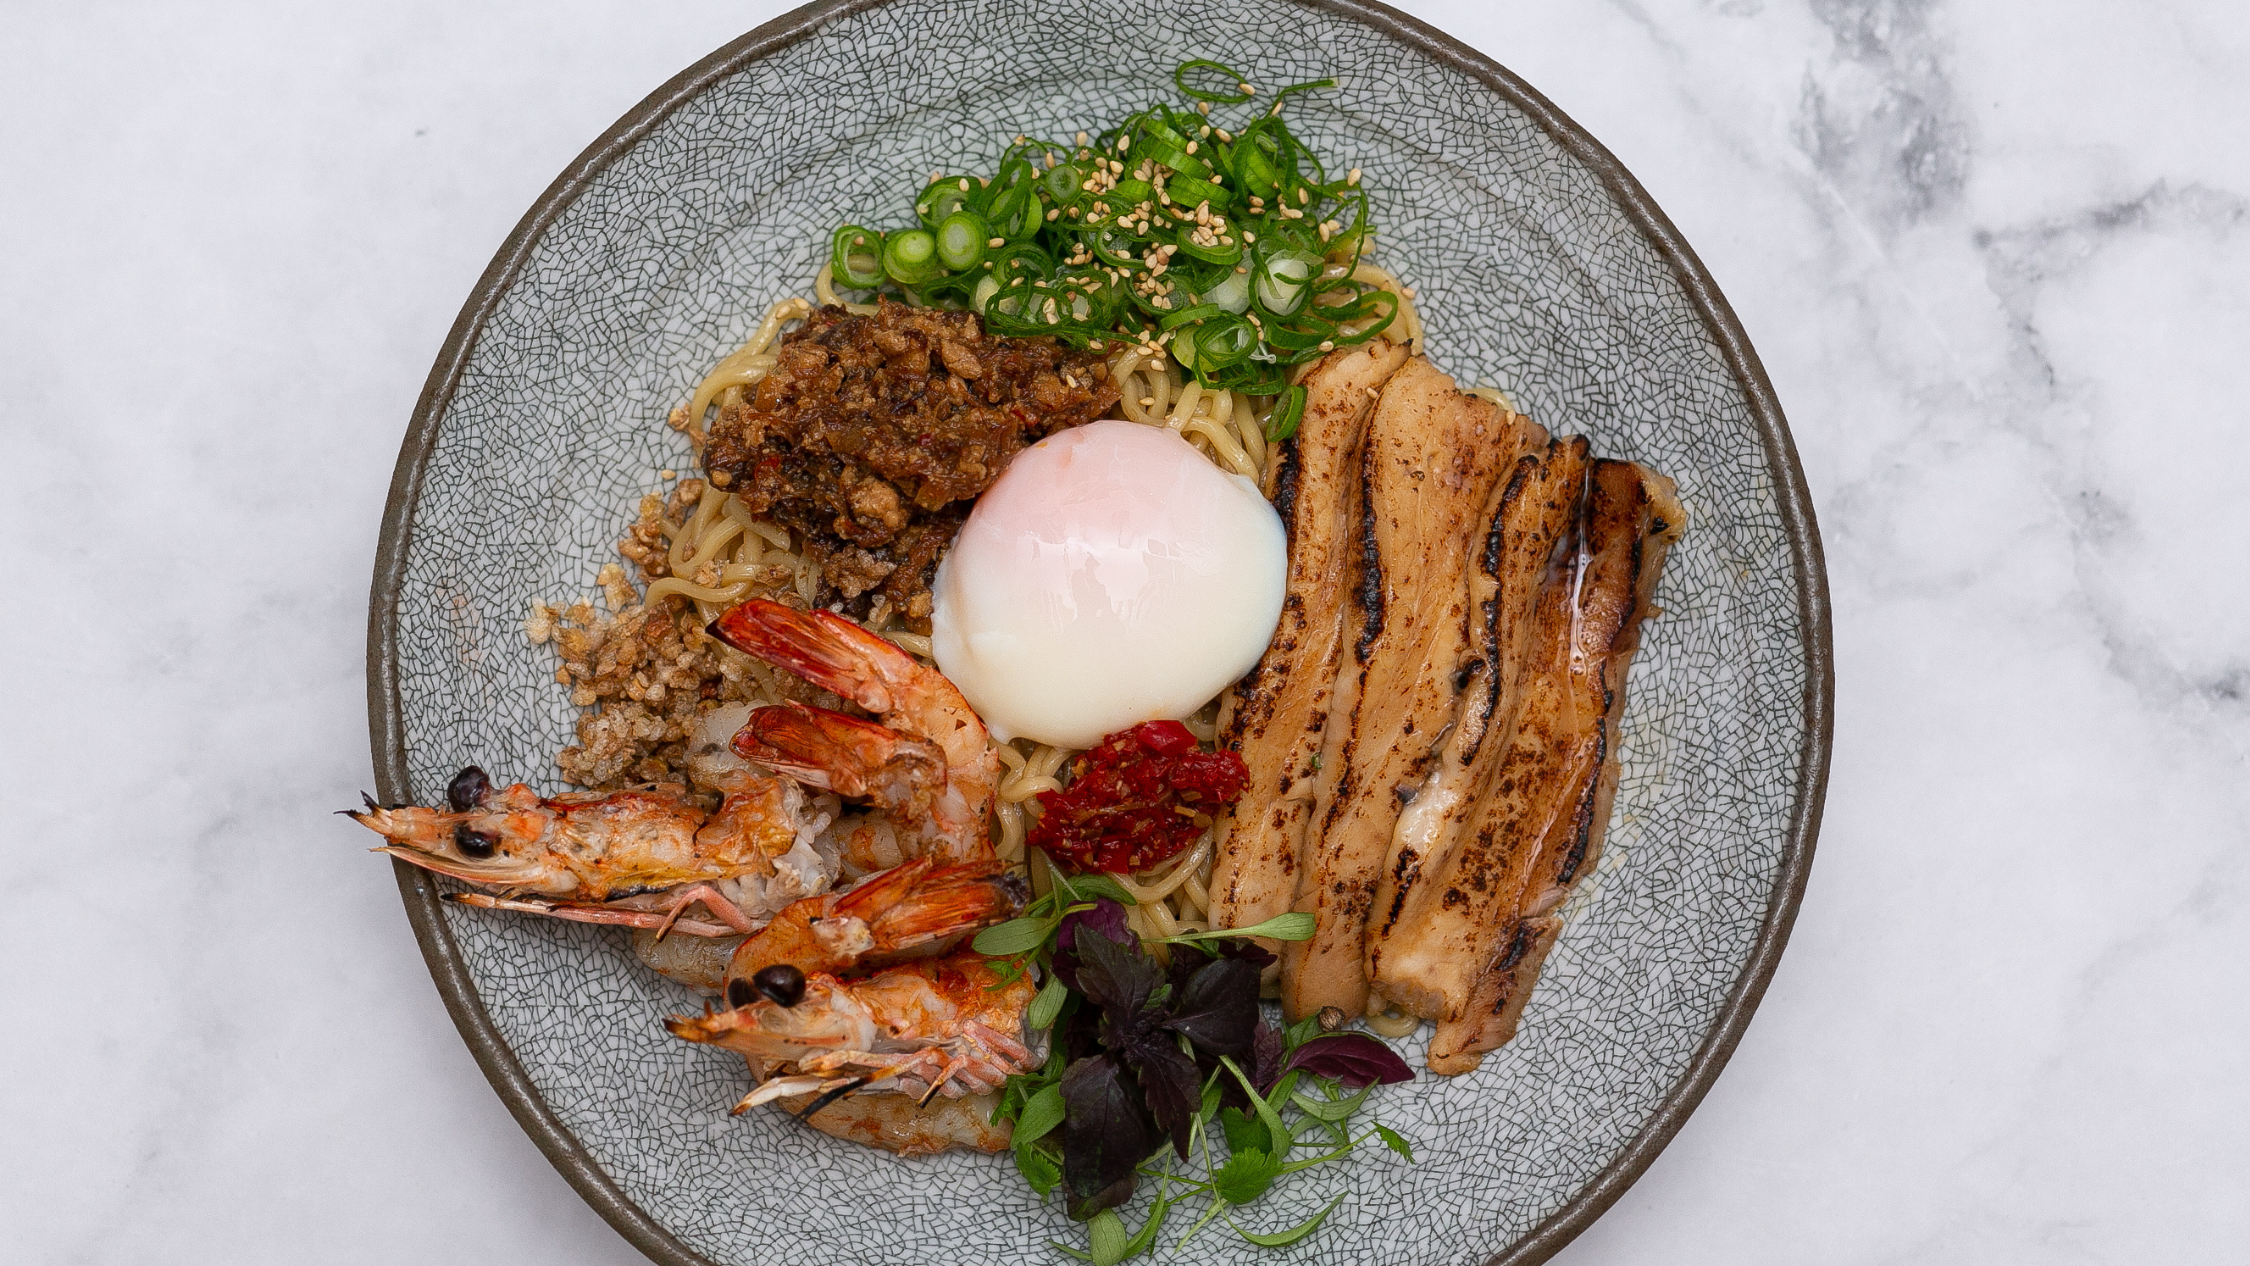 A don bowl with pork belly, fried prawns and a poached egg